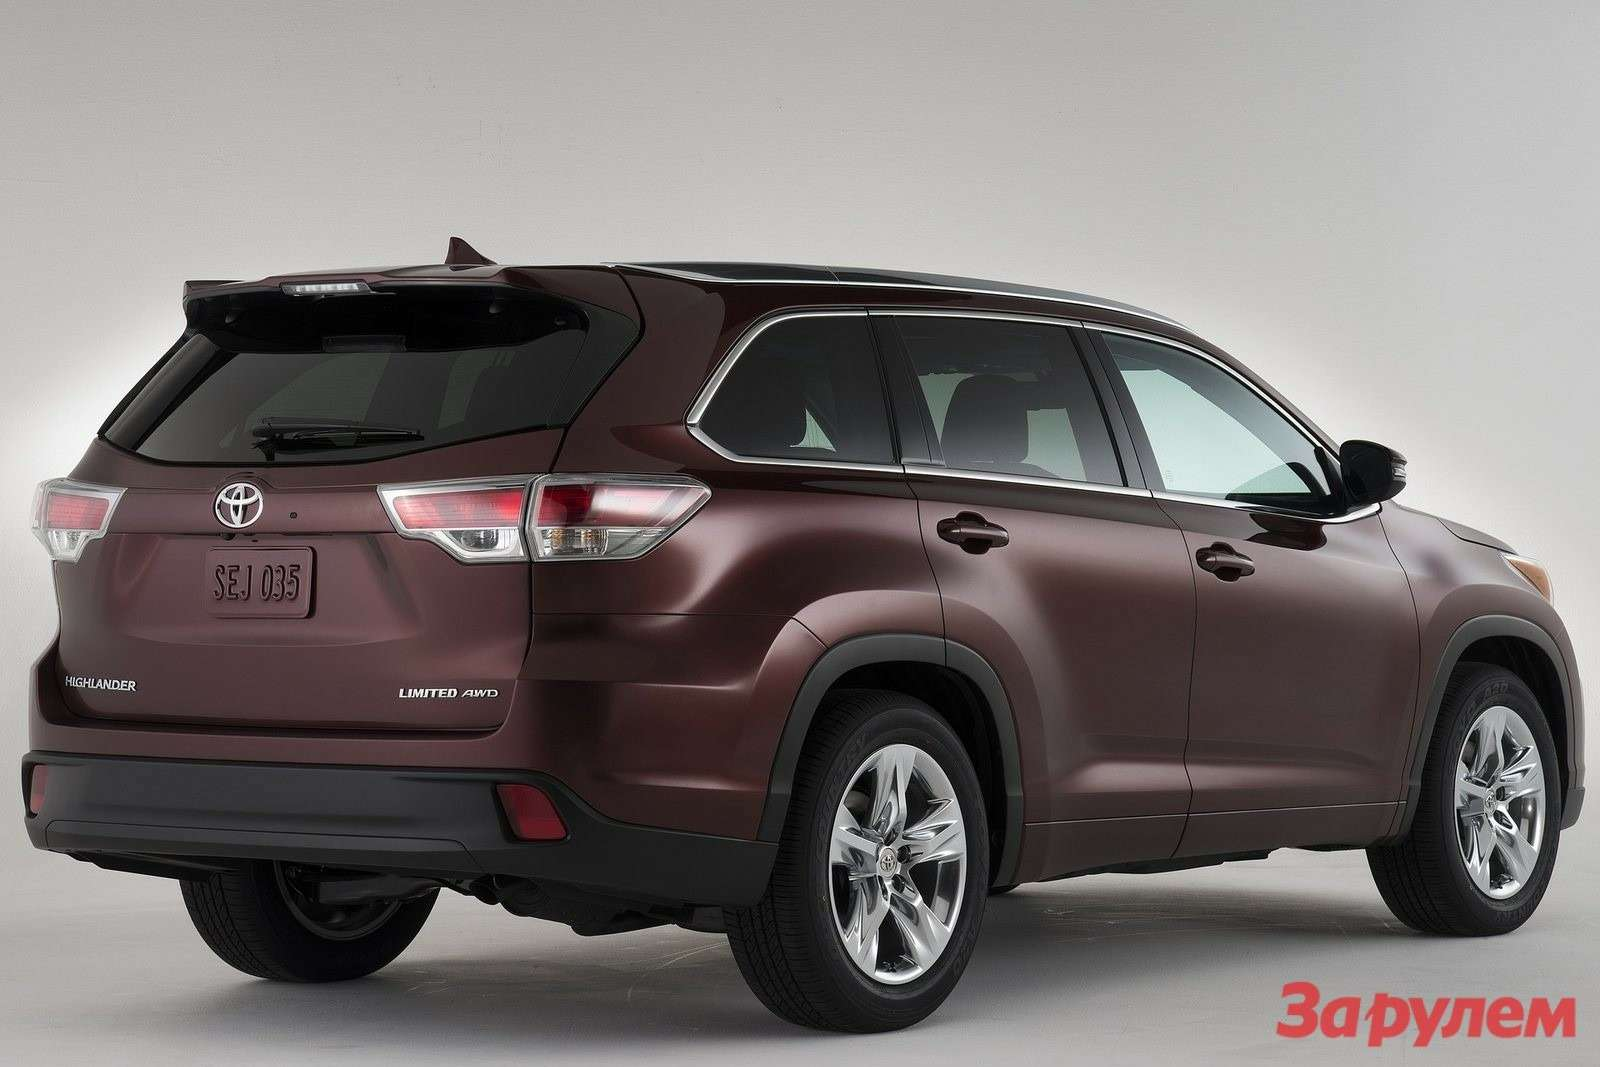 Toyota Highlander 2014 1600x1200 wallpaper 09